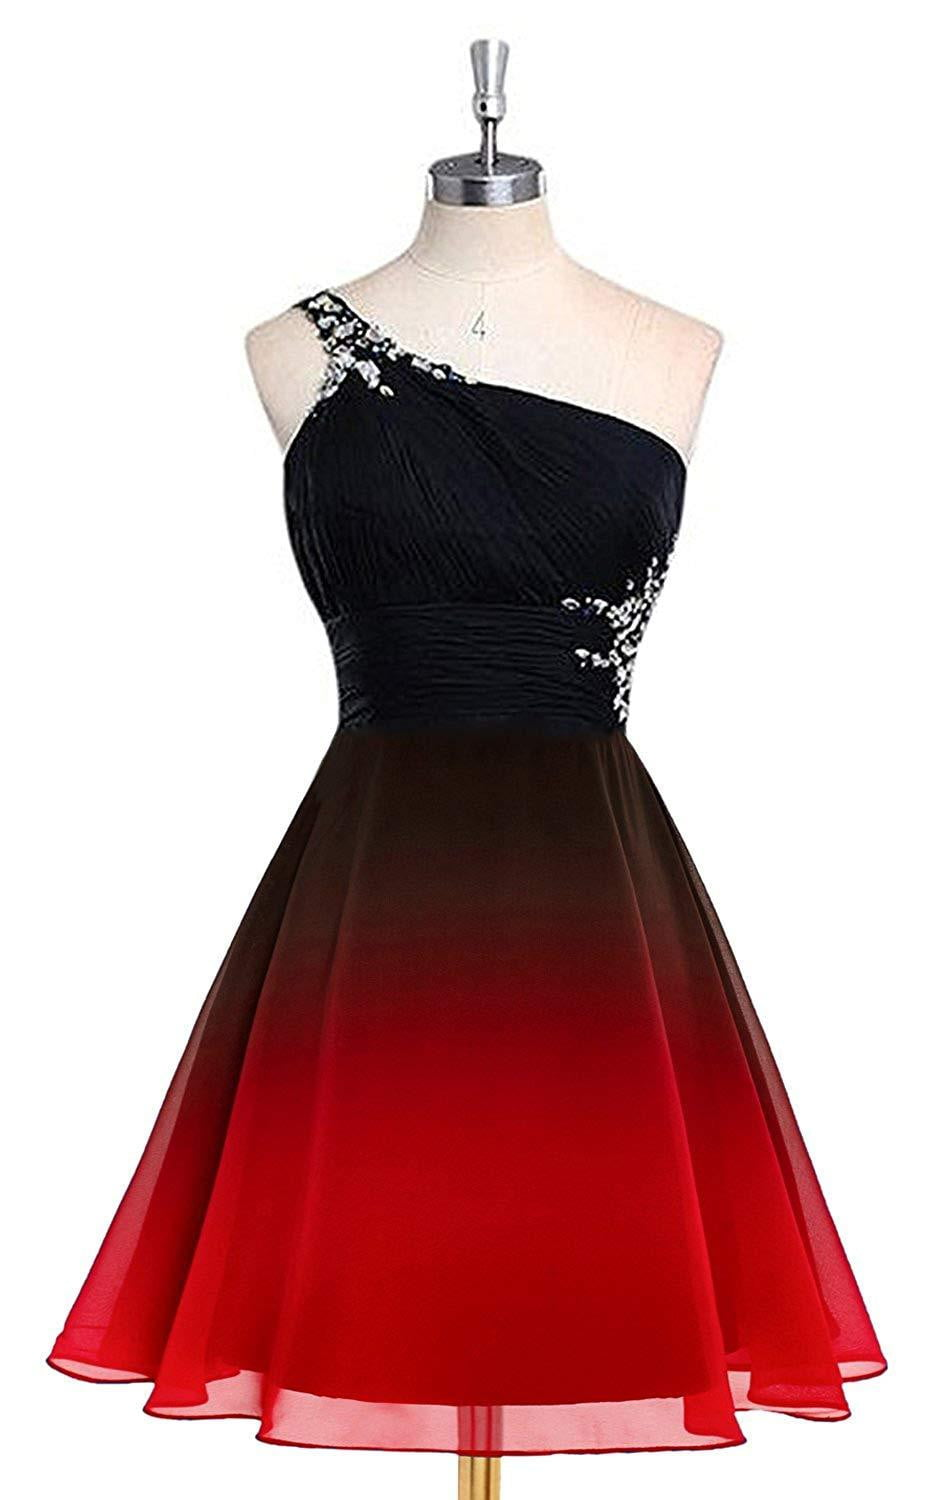 2019 Gradient Chiffon Short Prom Dresses One shoulder Beads Evening Homecoming Dress